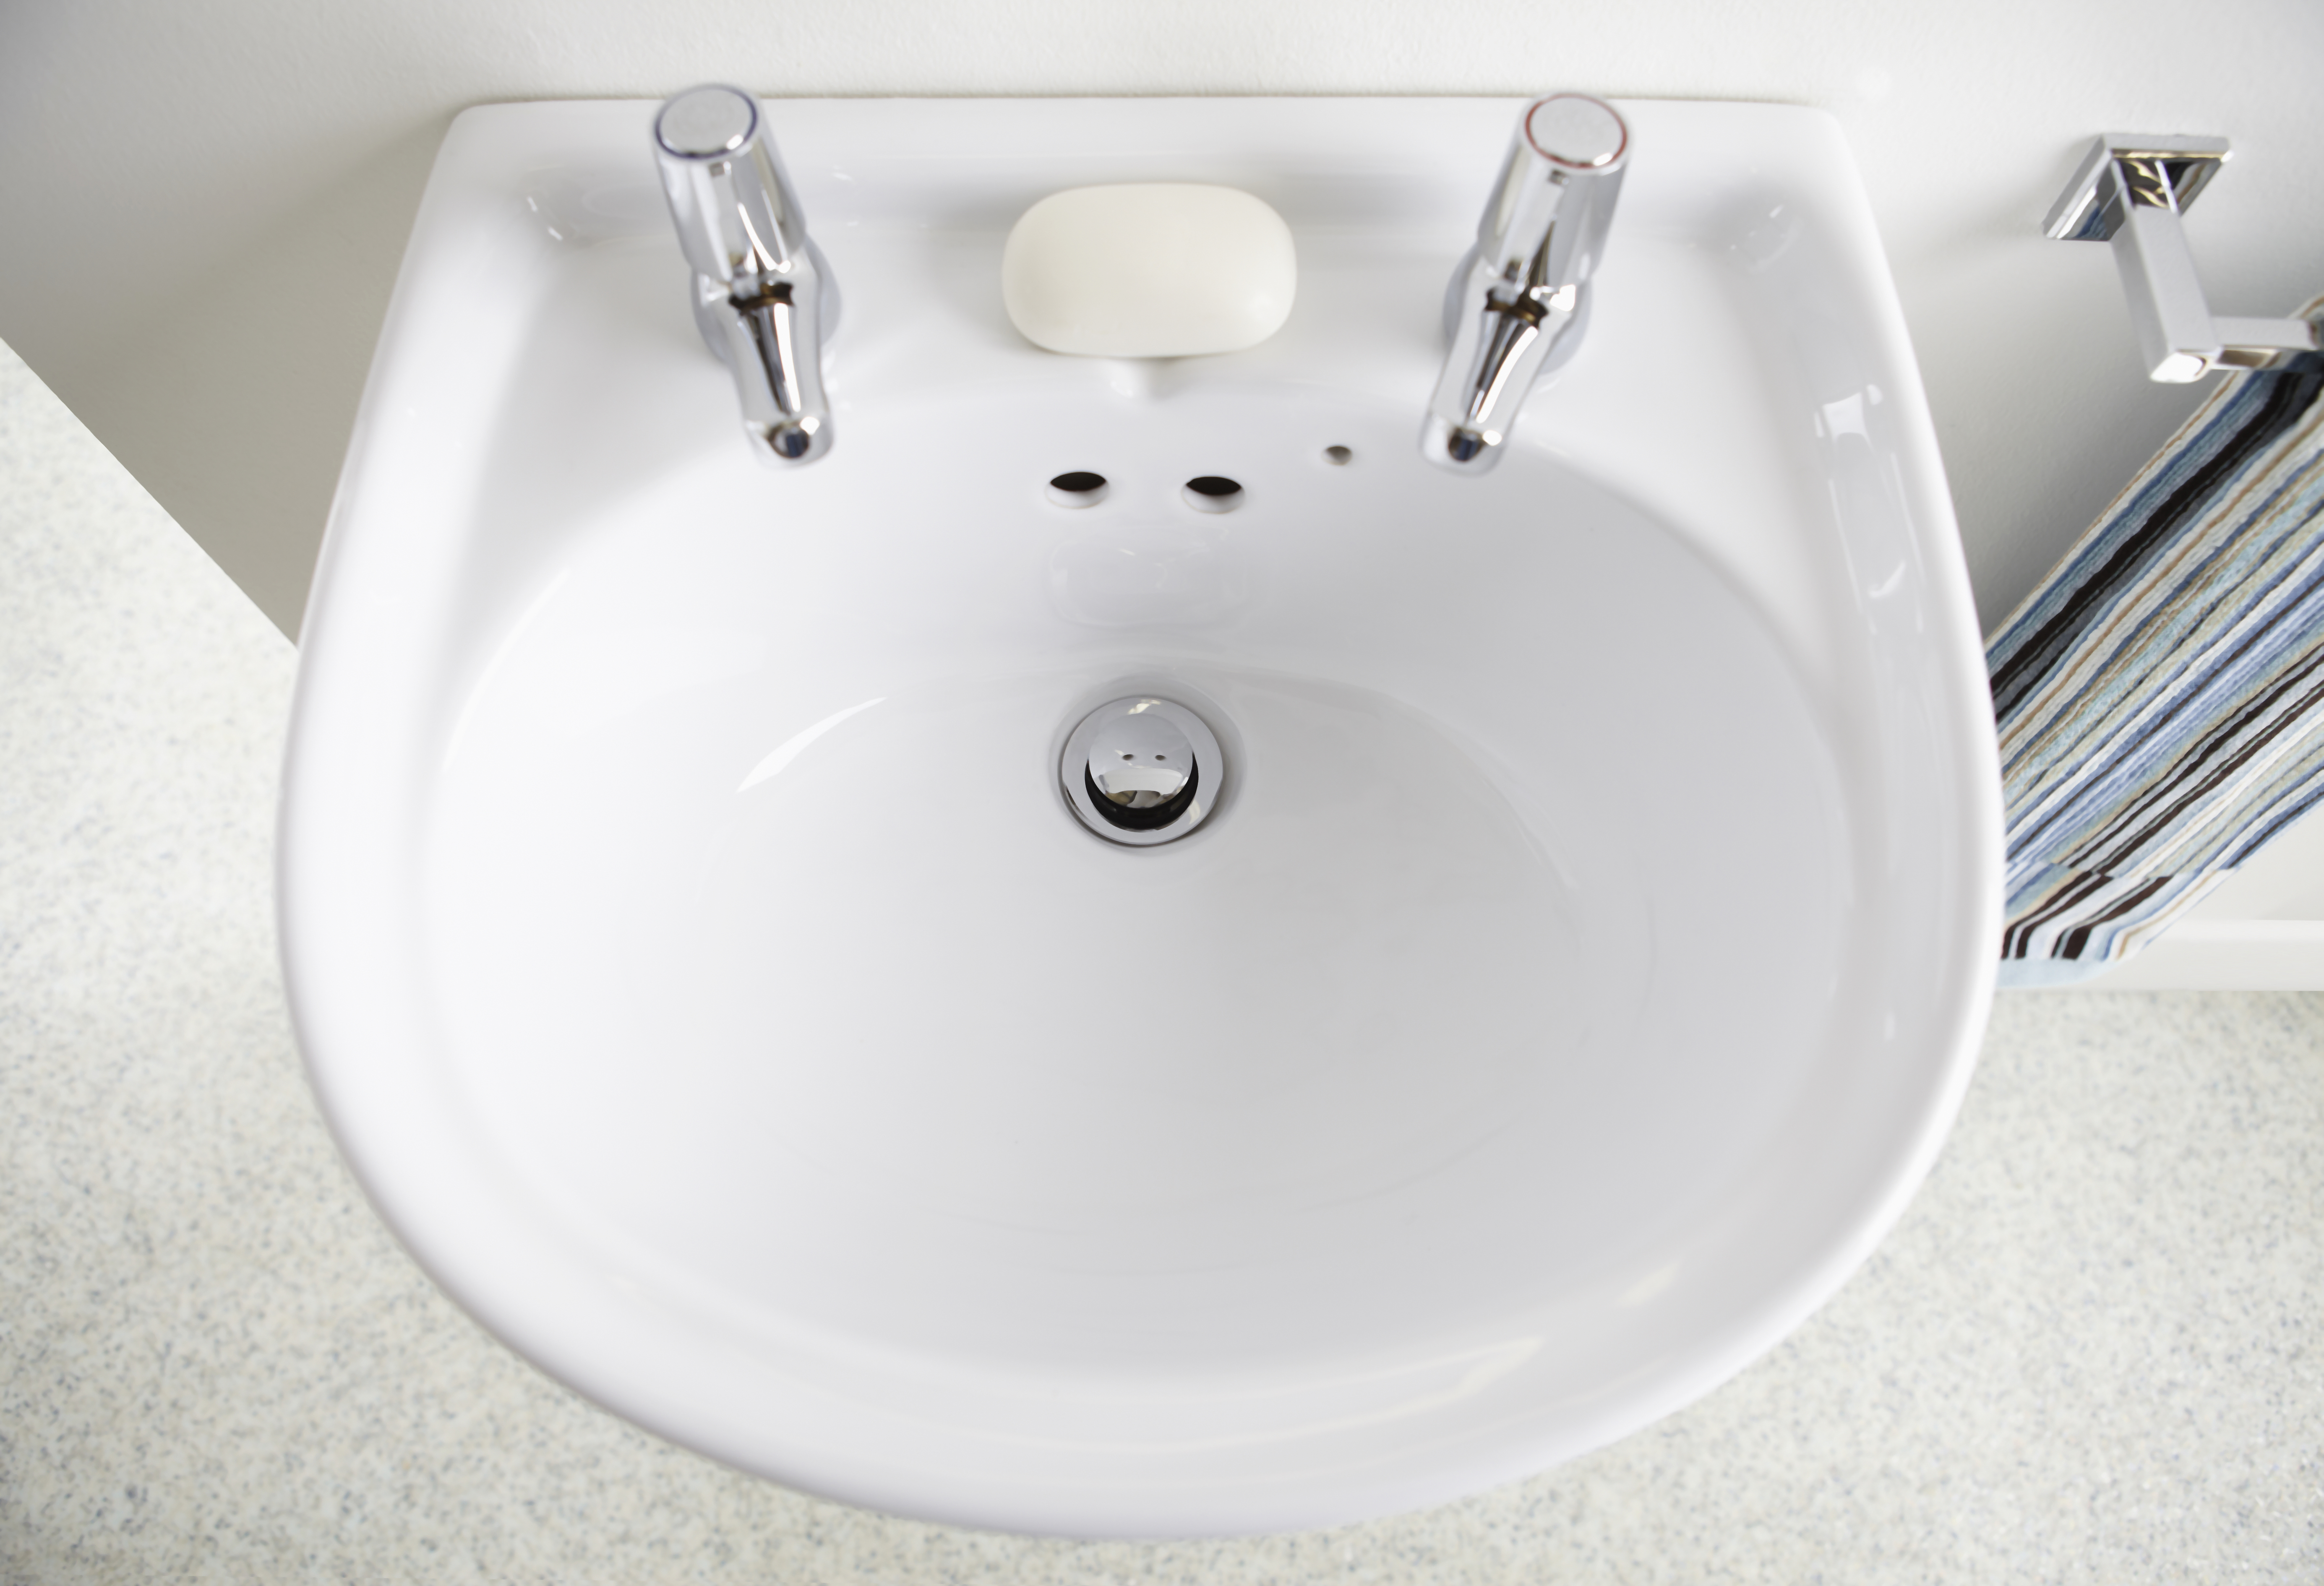 How to Restore the Gloss on a Ceramic Sink  Home Guides  SF Gate